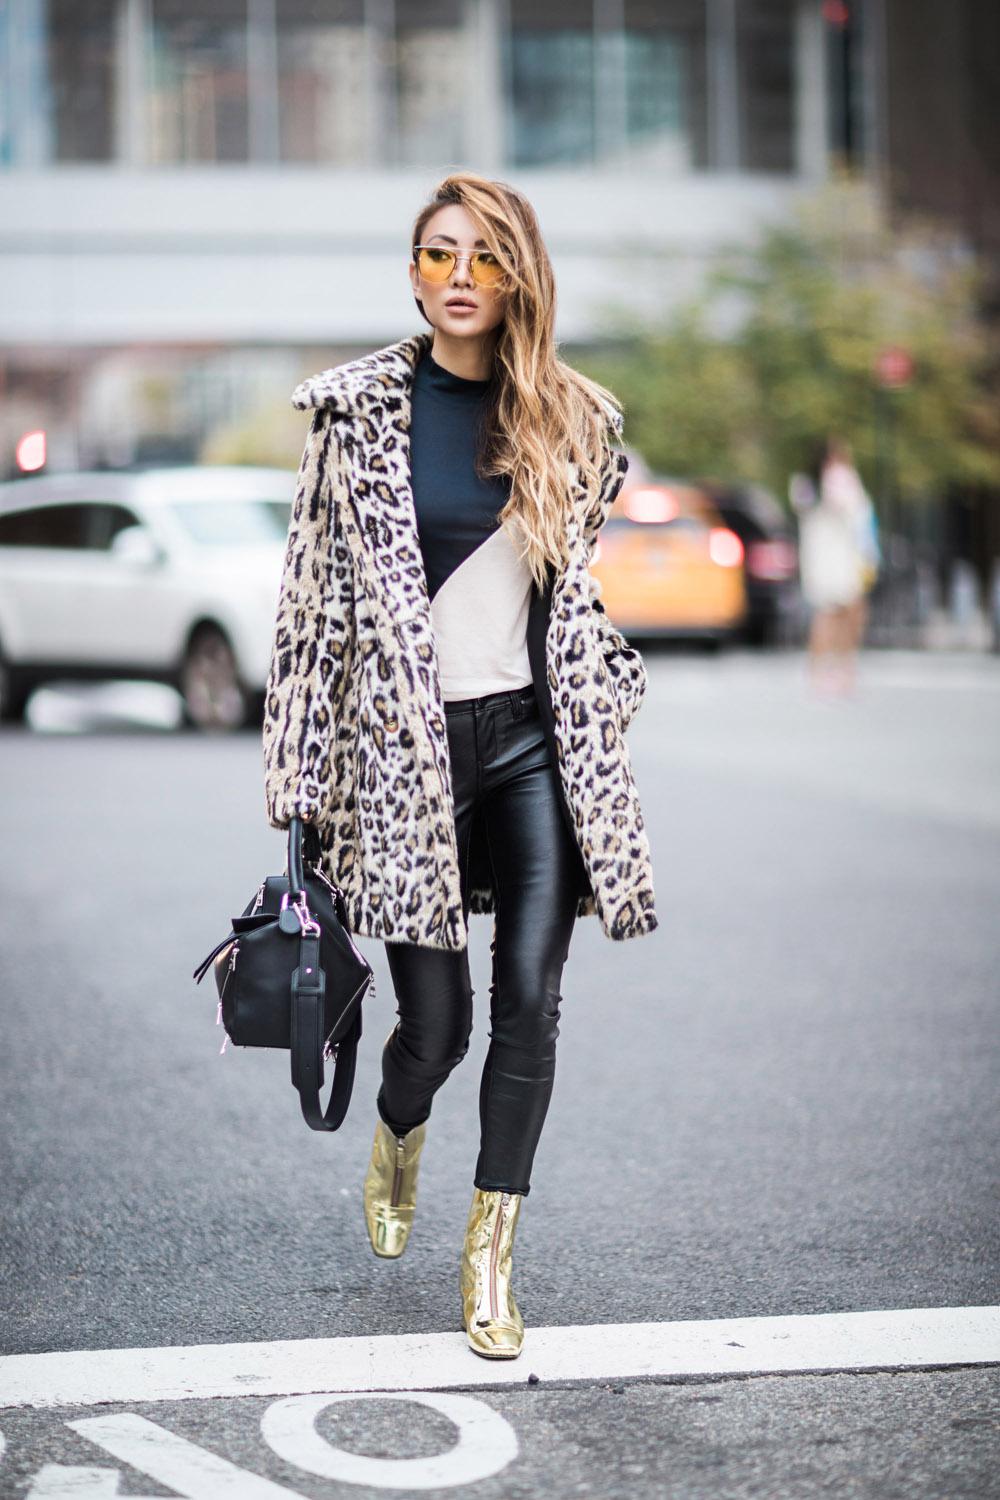 how-to-wear-leopard-print-like-a-pro-001-900x1350@2x-2